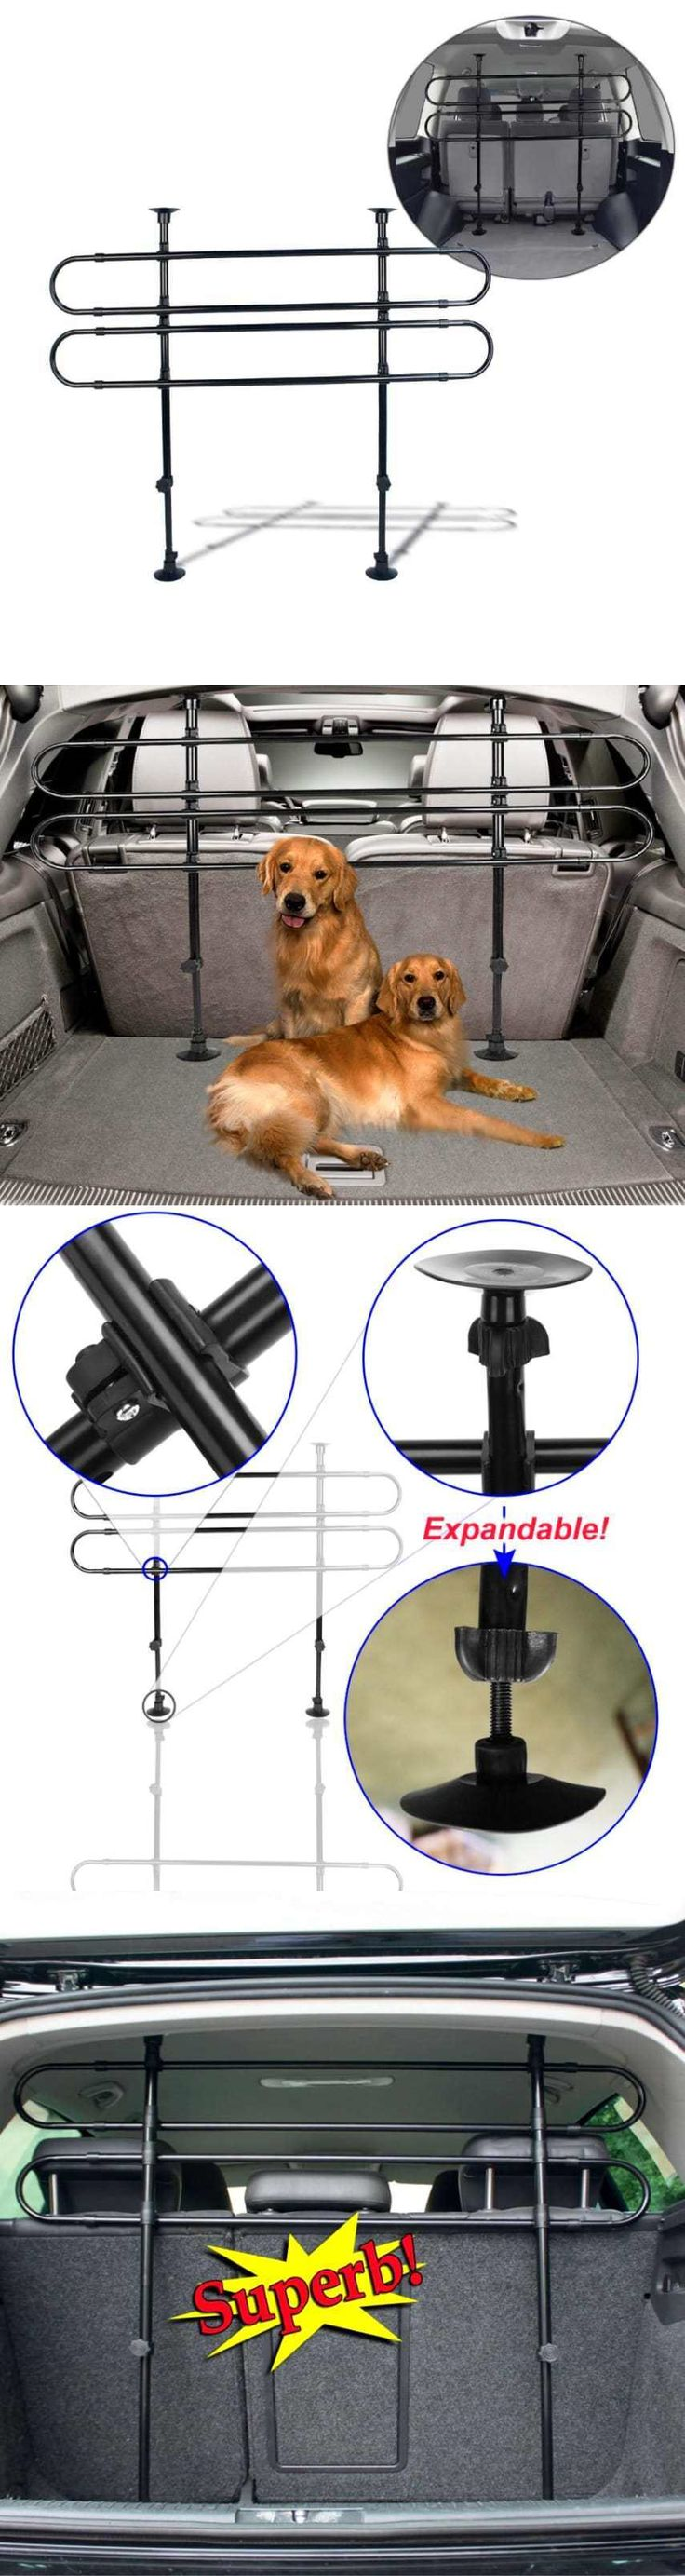 Car Seats and Barriers 46454: Pet Barrier Dog Accents Dynamic Highlander Hardwood Ez Balck Gate Car Suv New BUY IT NOW ONLY: $35.3